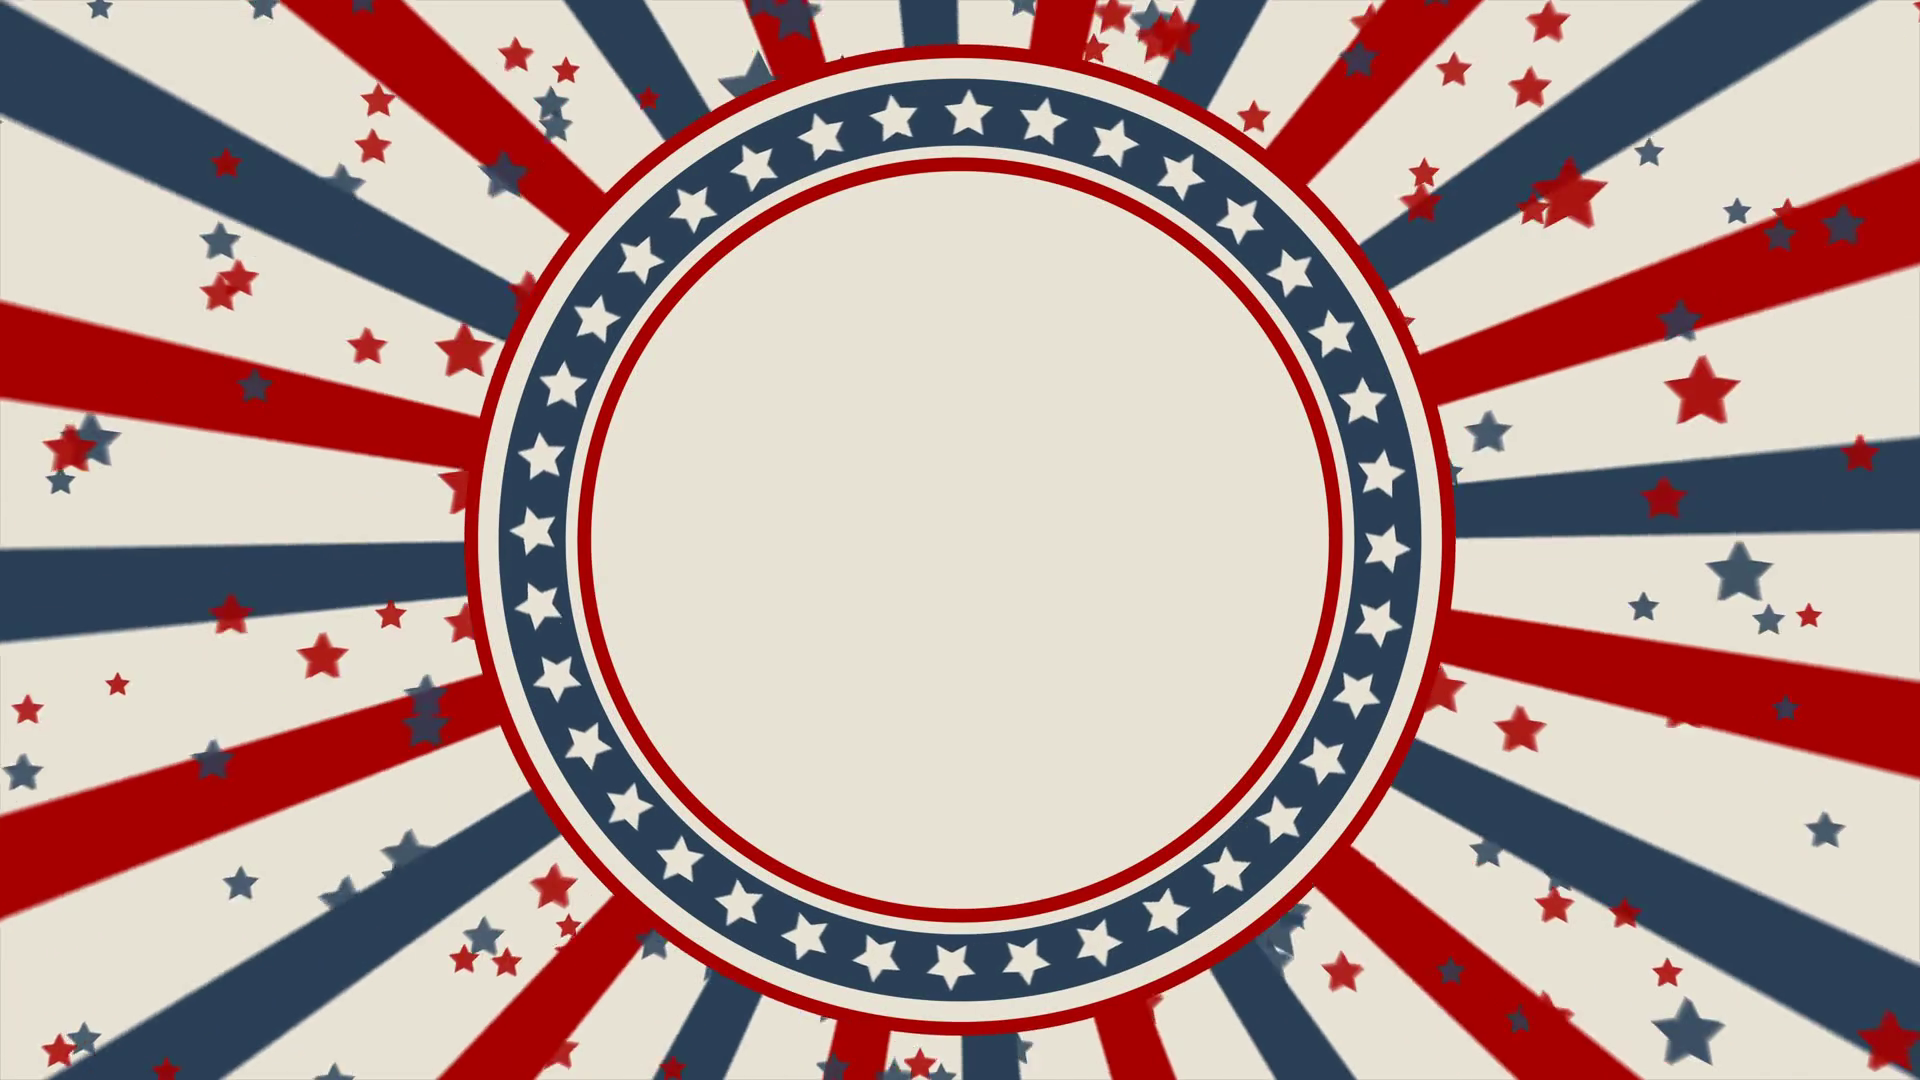 Vintage style American patriotic background. Looped animation Motion  Background.